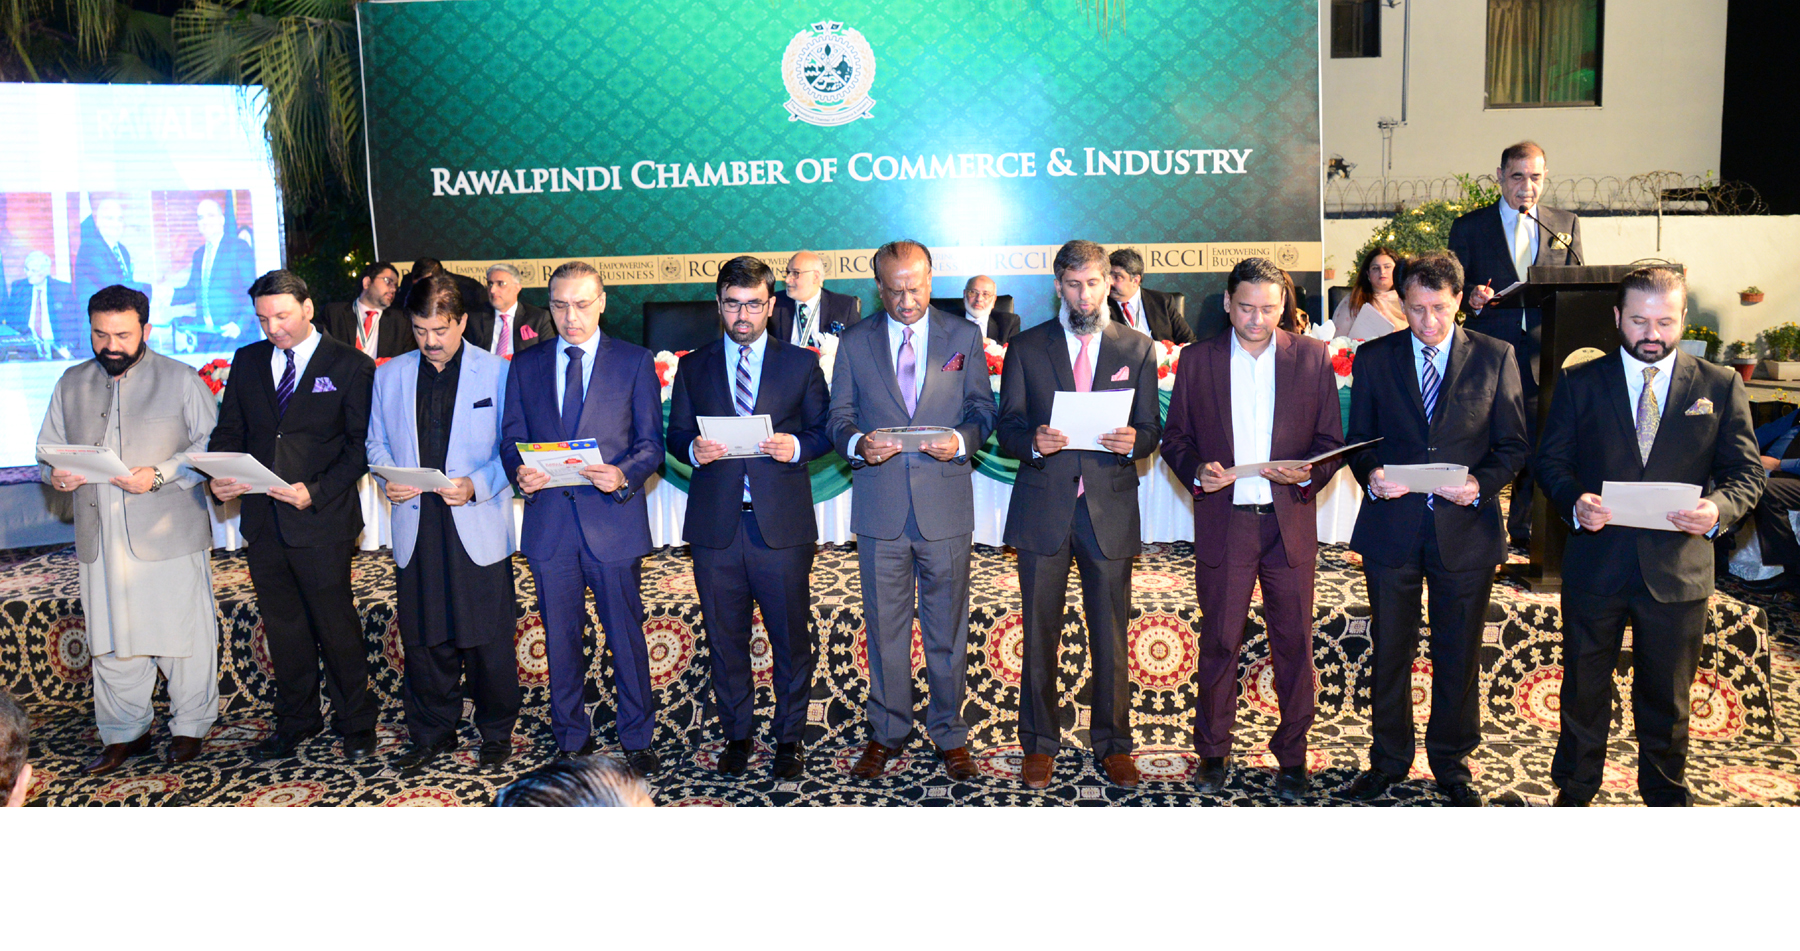 RCCI gorup leader Sohail Altaf taking oath from the newly elected office bearers of Rawalpindi Chamber of Commerce and Industry at Chamber house Rawalpindi